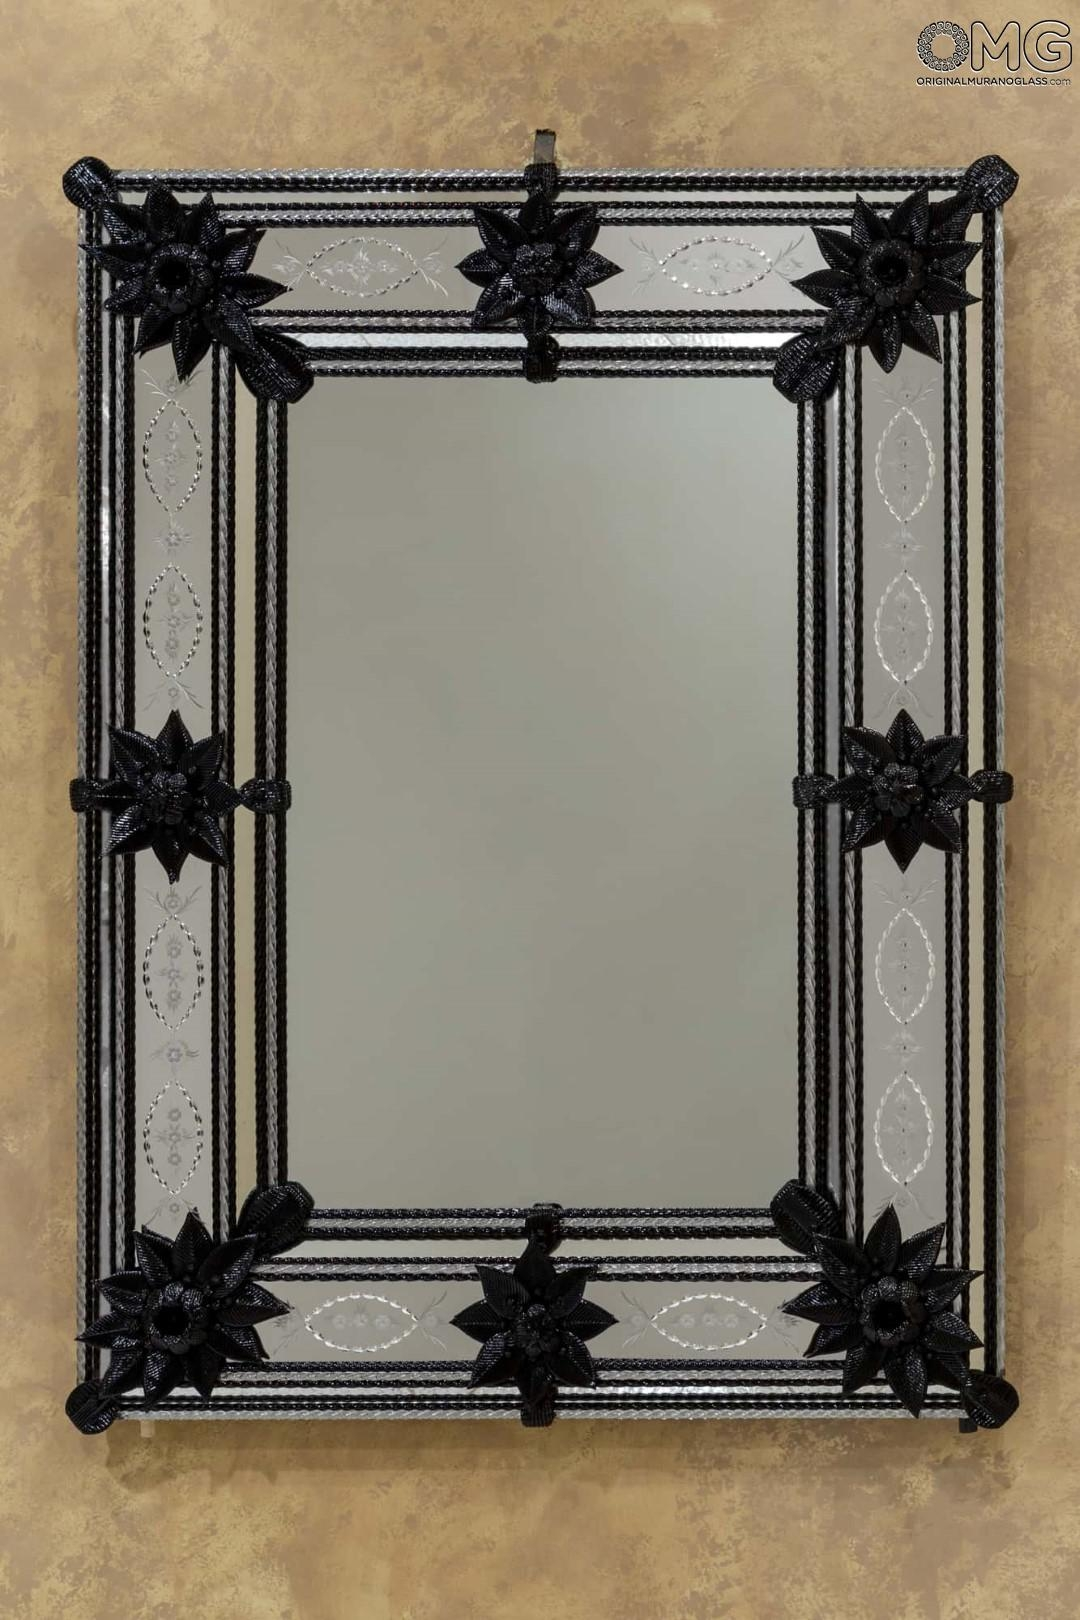 Venetian Mirrors Original From Murano Venice Italy Big Collection Inside Venetian Mirror For Sale (Image 15 of 15)